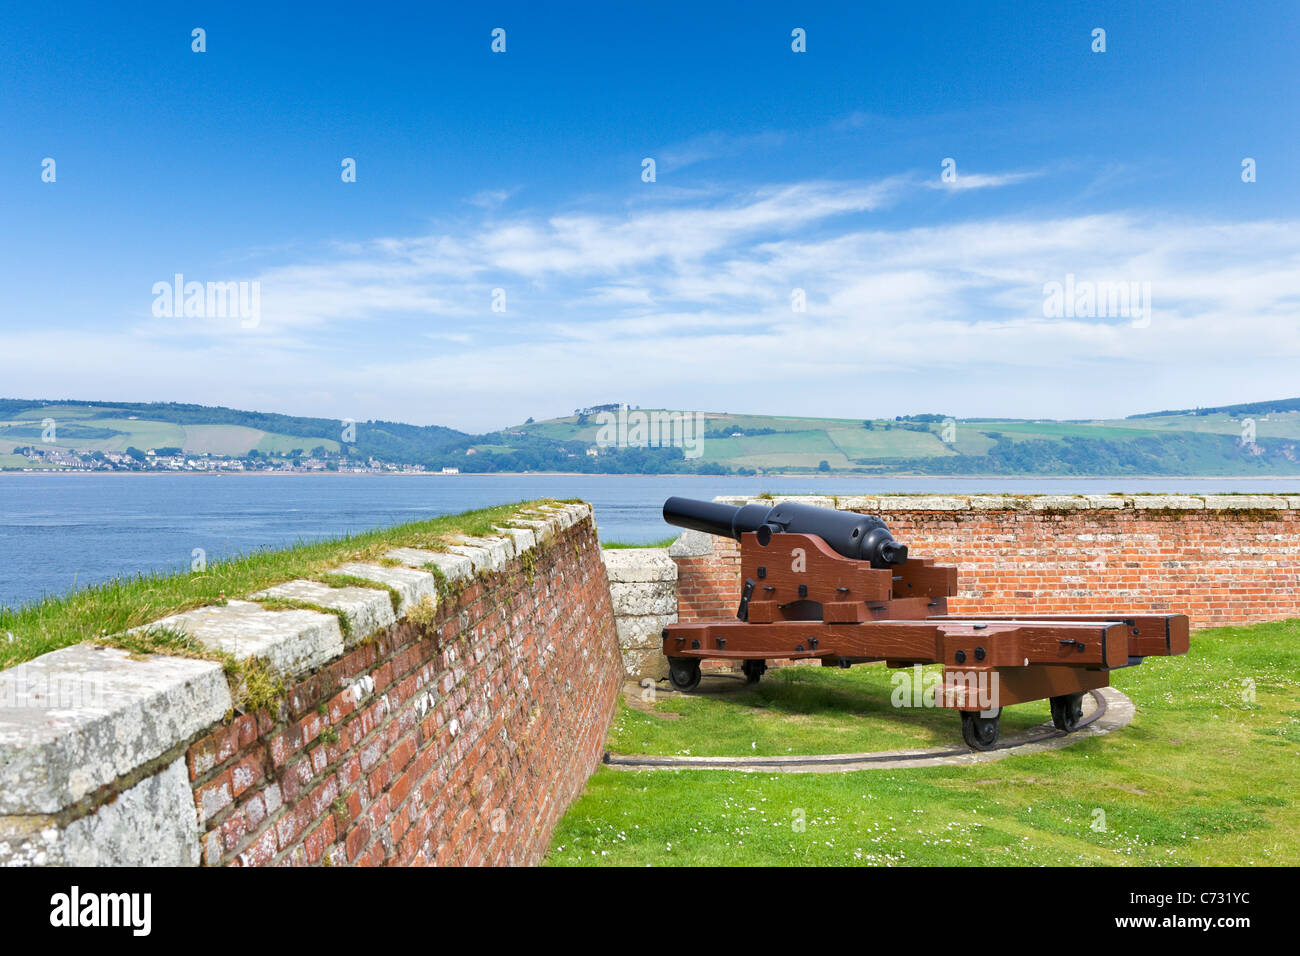 Gun on the Point Battery in Fort George overlooking the Moray Firth, near Inverness, Highland, Scotland, UK - Stock Image